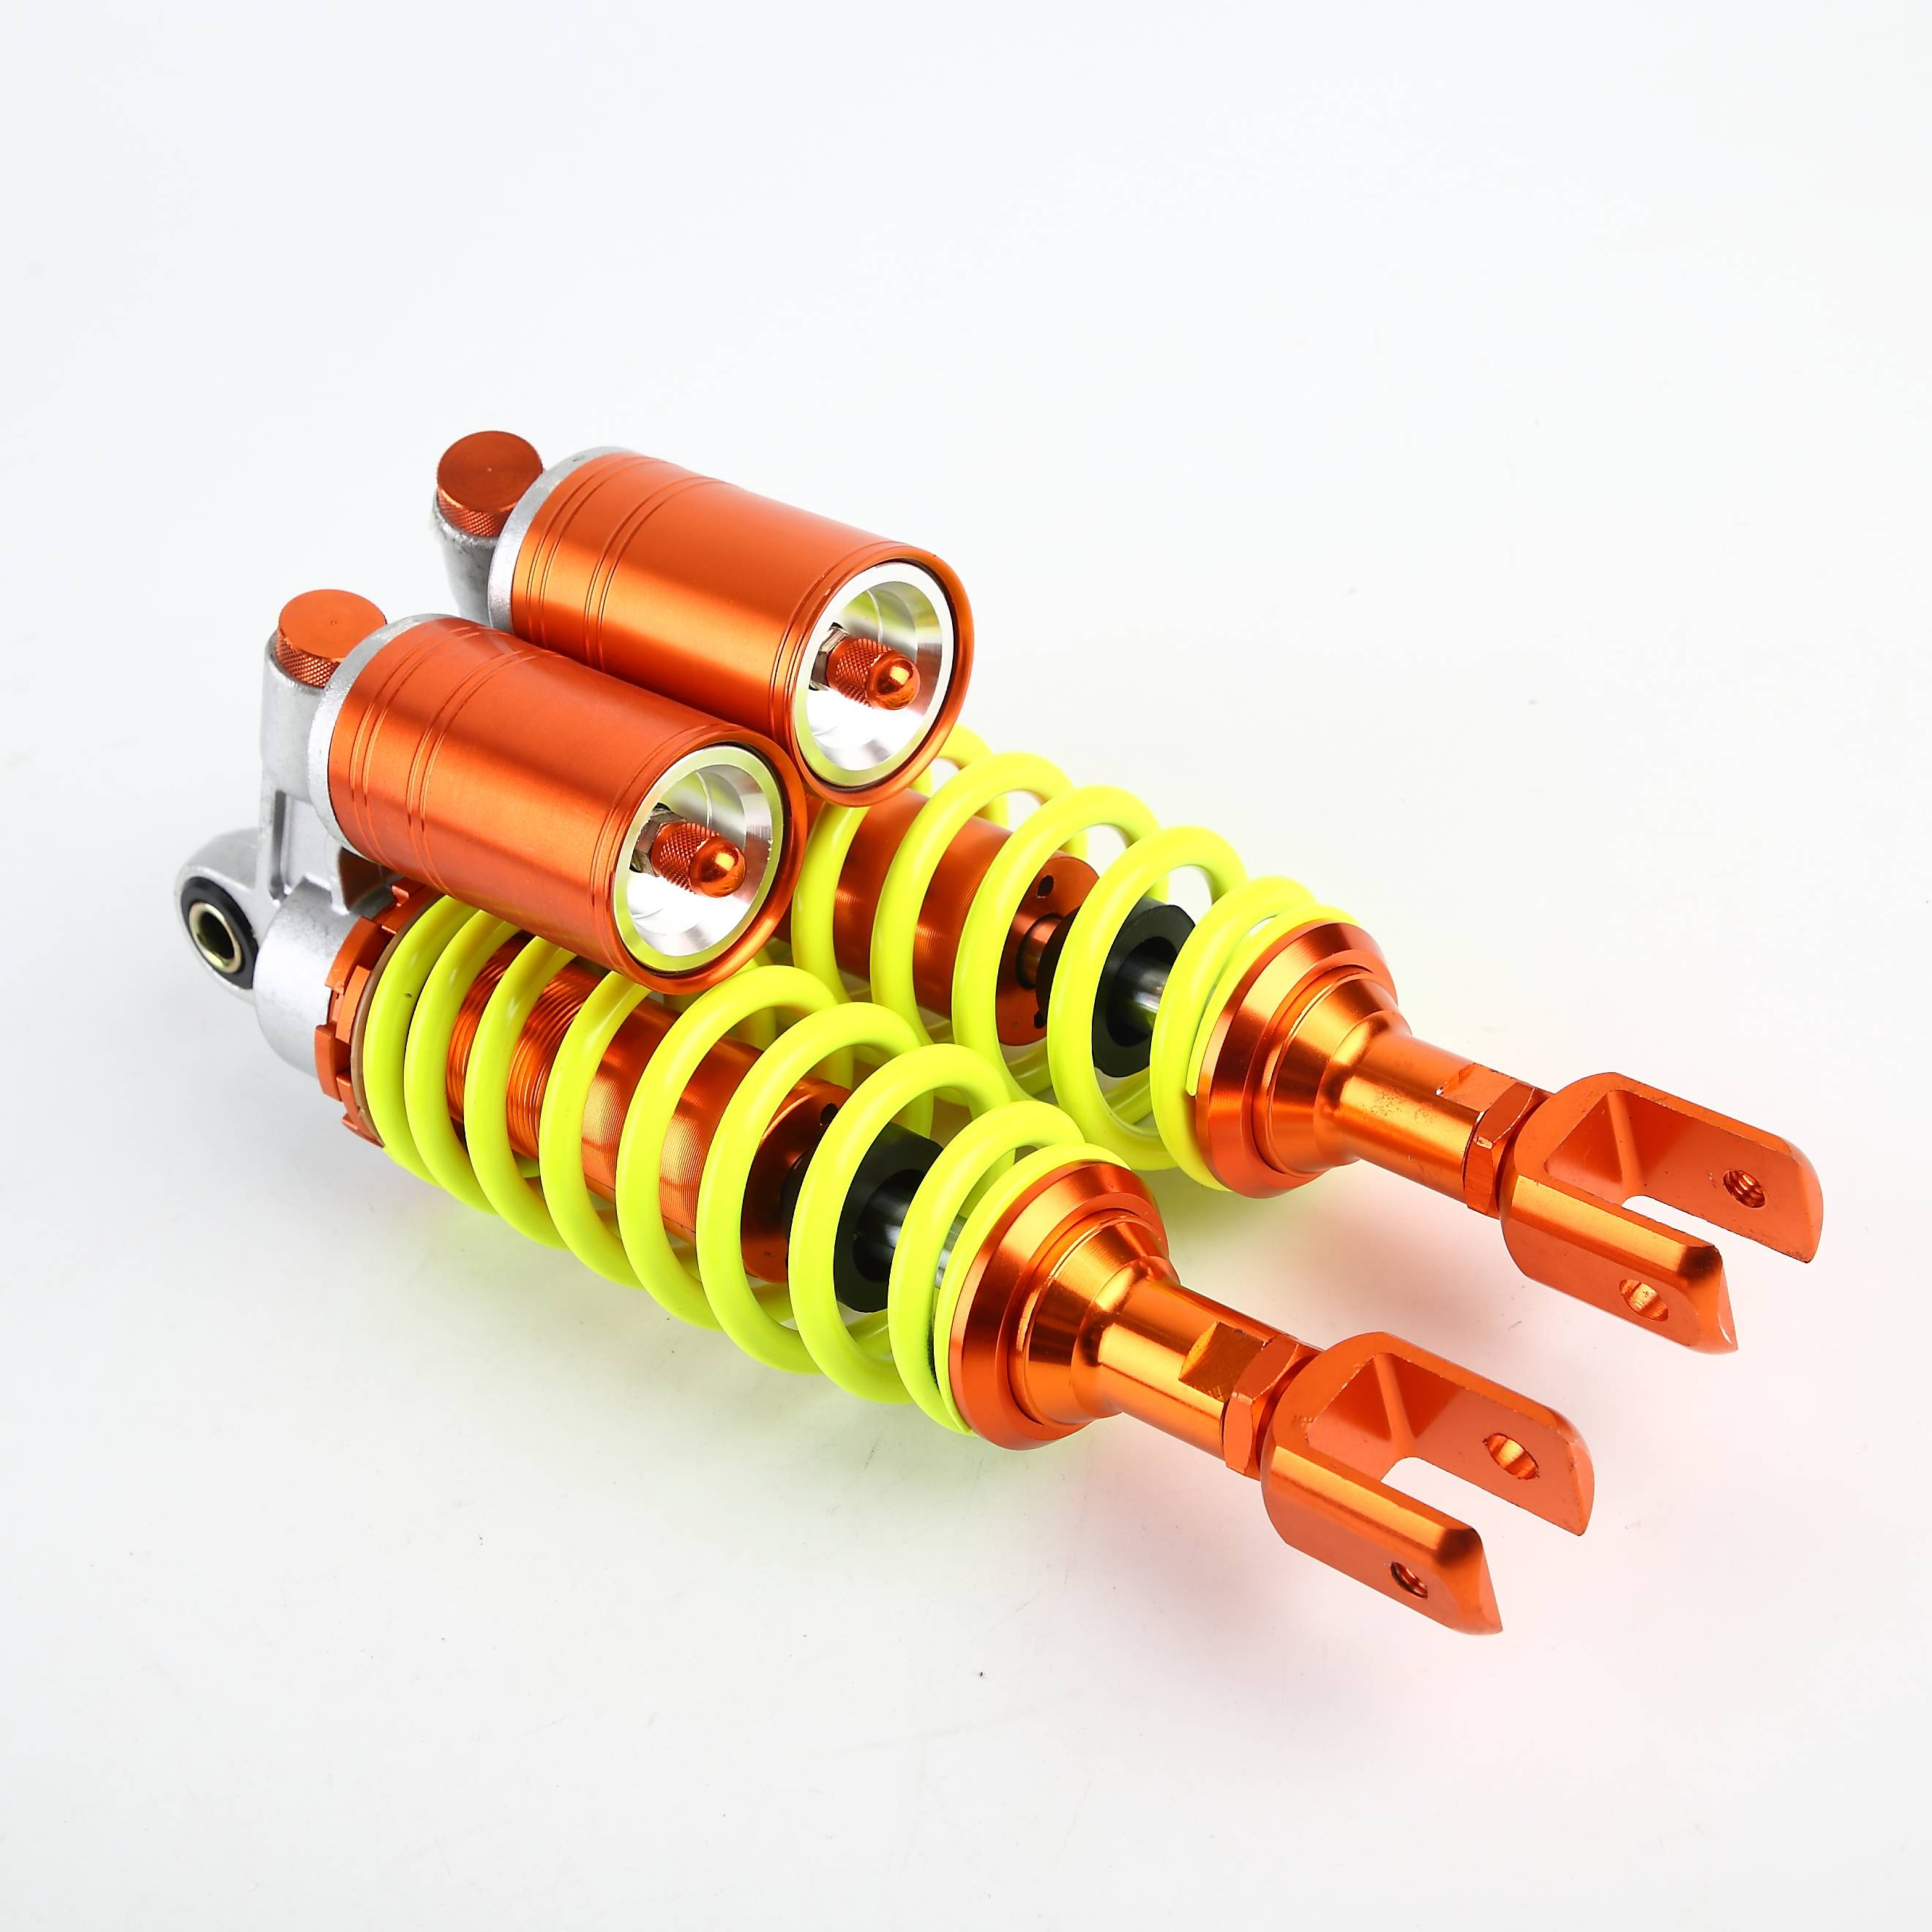 R116  290MM Yellow and Orange Shock Absorber/Damper for Motorcycles, Dirt Bikes